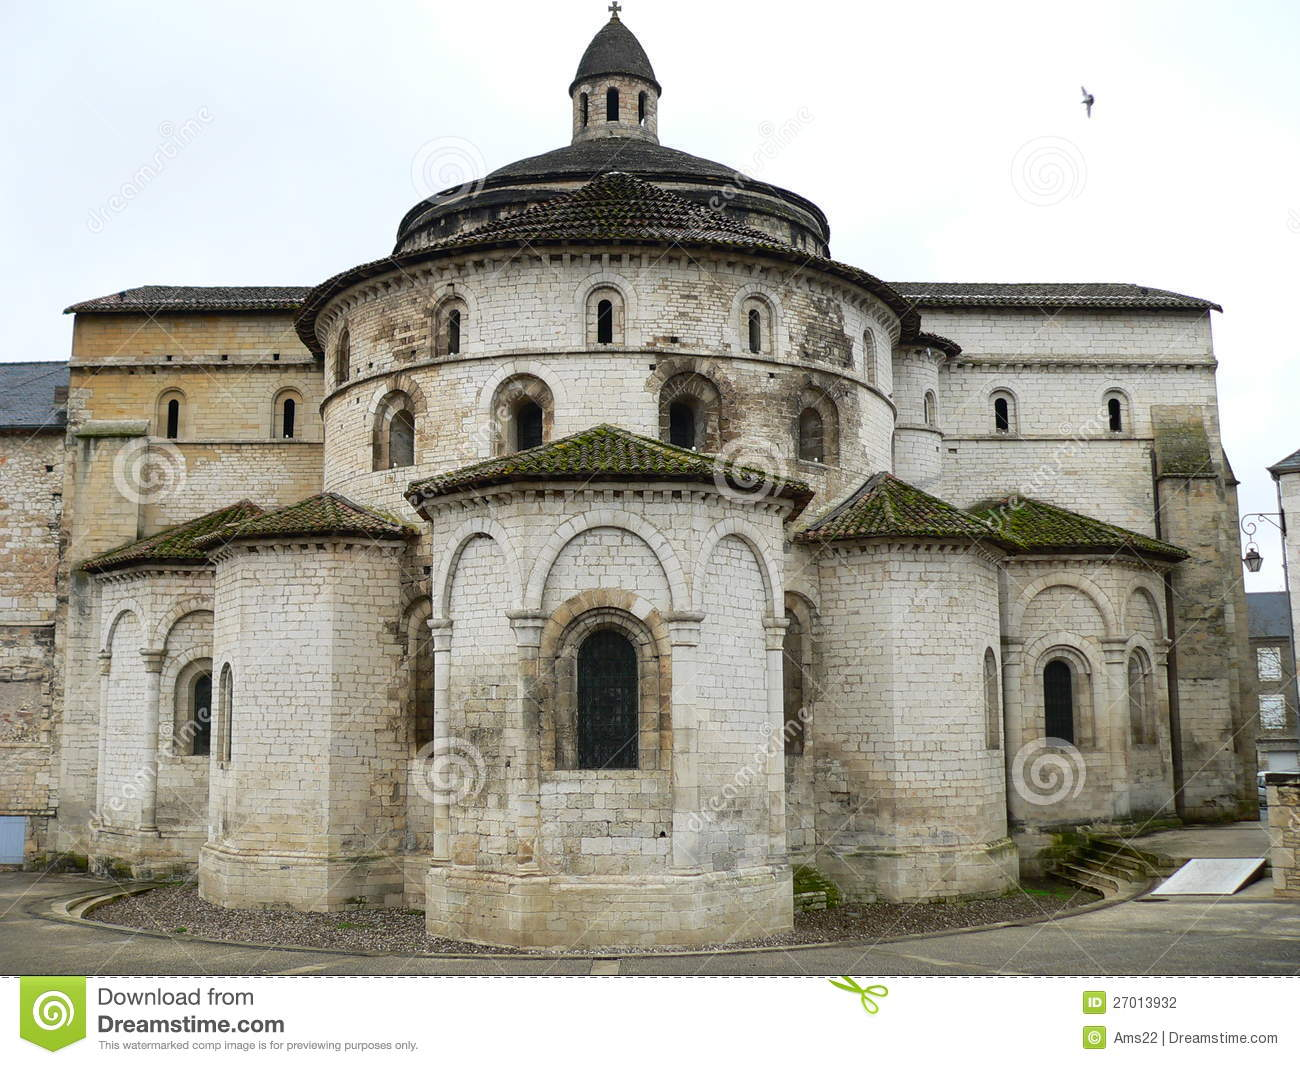 Souillac France  City pictures : Abbaye Sainte Marie, Souillac France Photographie stock Image ...